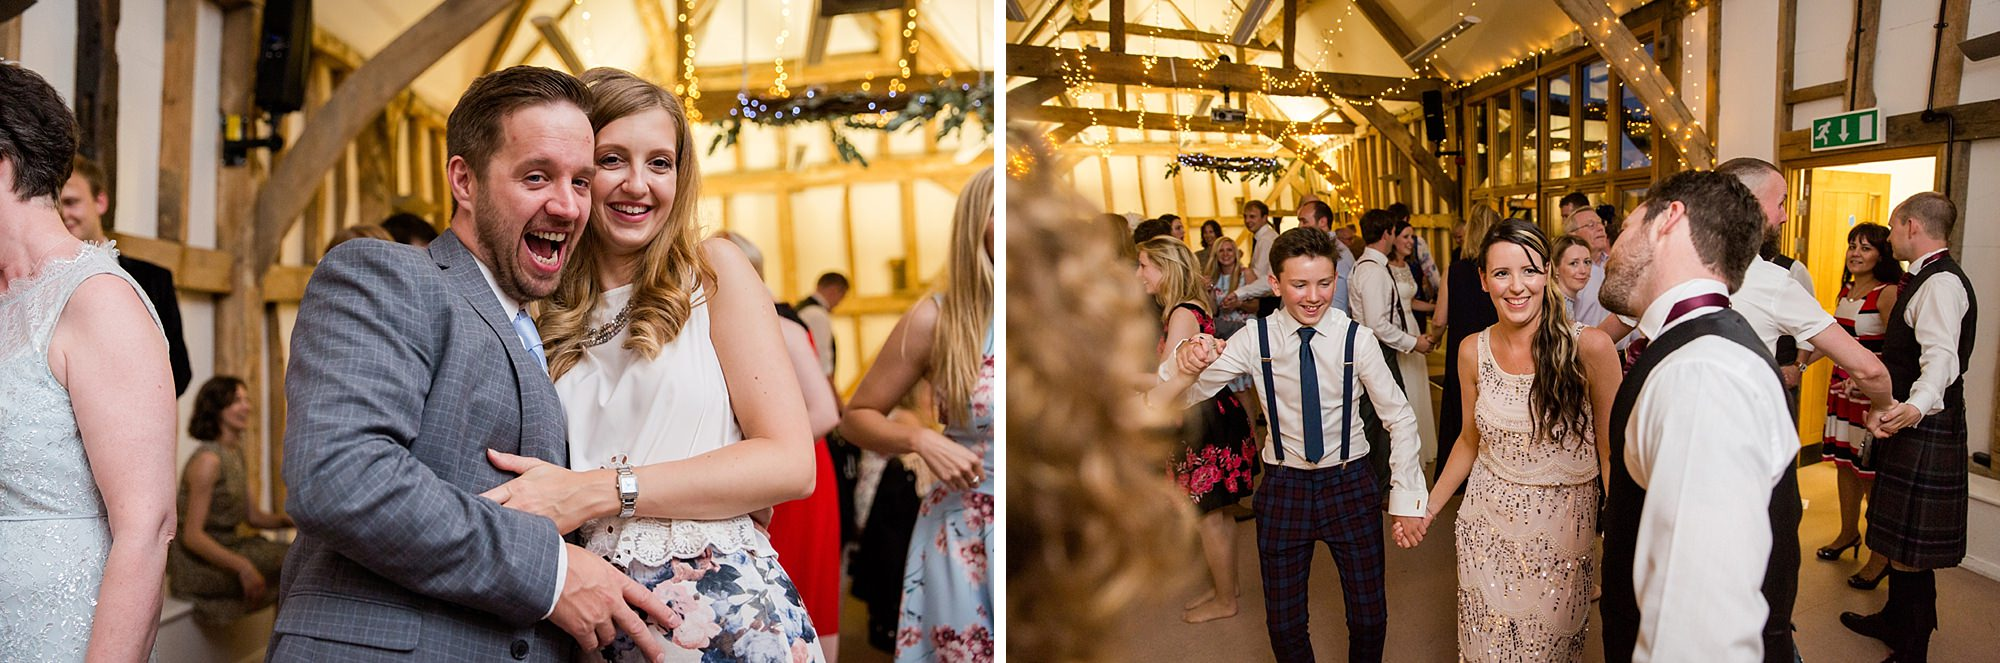 Outdoor humanist wedding photography dancing